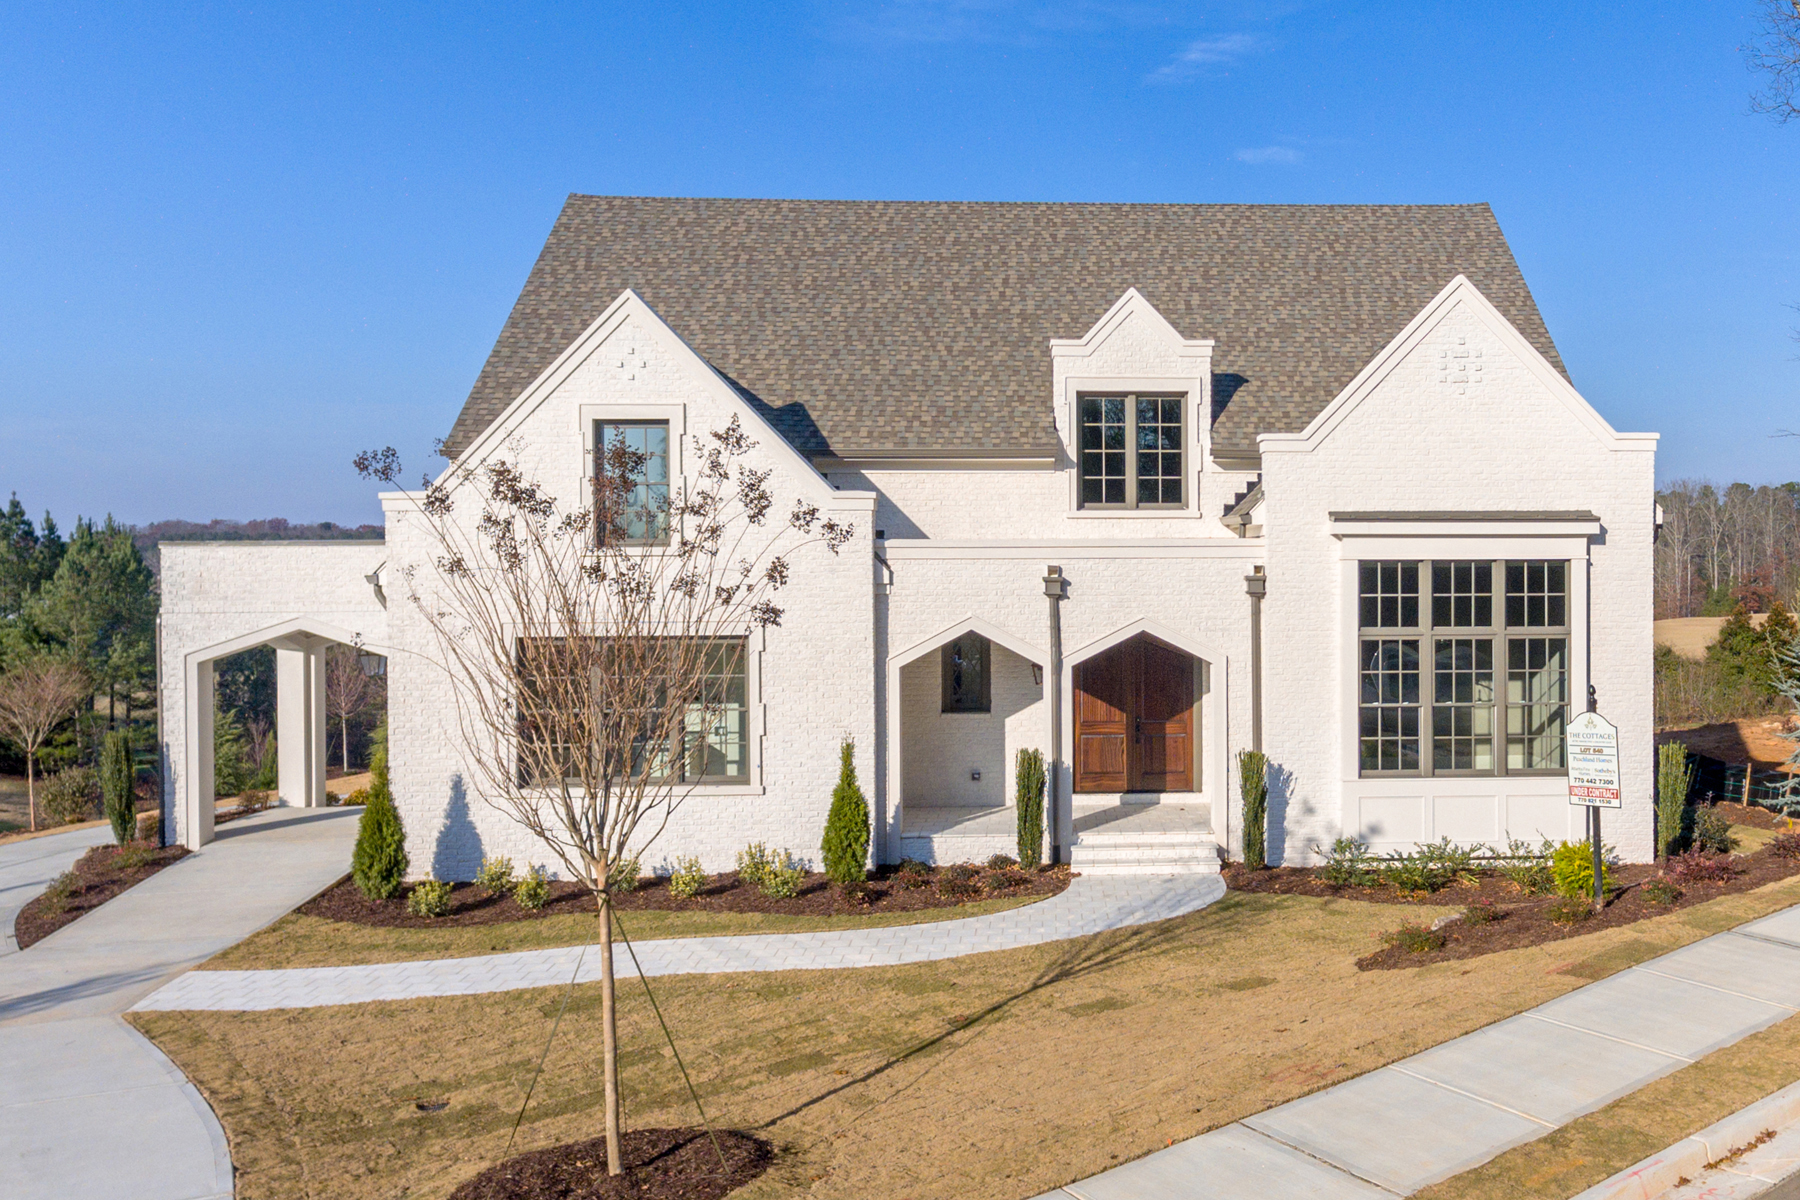 Terreno por un Venta en Build Your Dream Home In The Country Club Of The South 0 Barkston Way Johns Creek, Georgia 30022 Estados Unidos